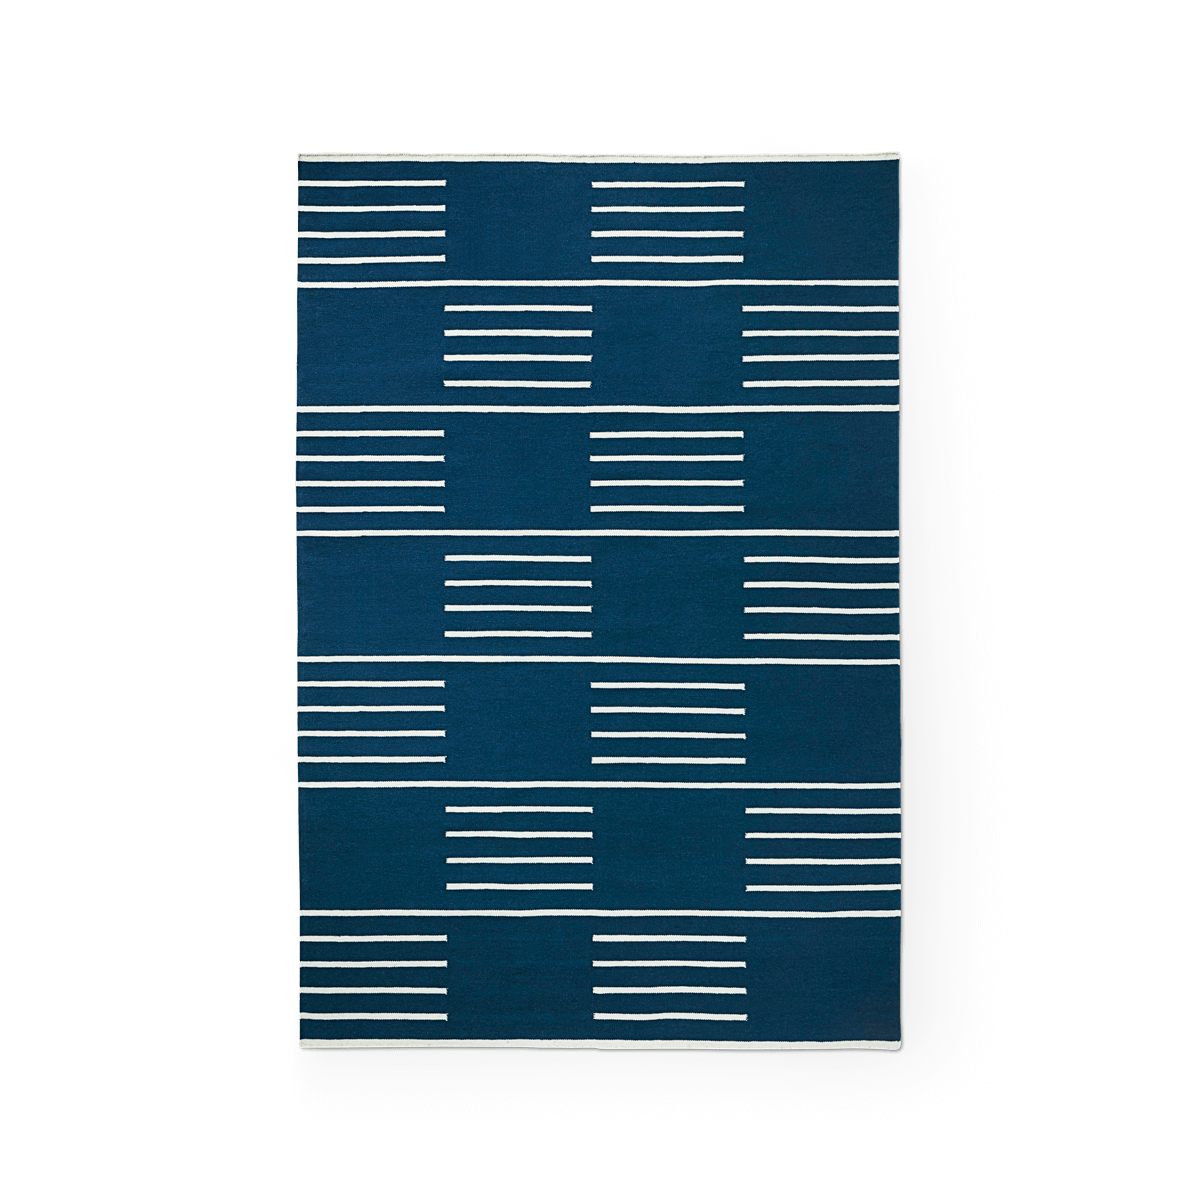 Product image of the flatweave rug Classic in the color Blue. On it is a pattern made out of stripes in a checkerboard fashion in a Cream color.